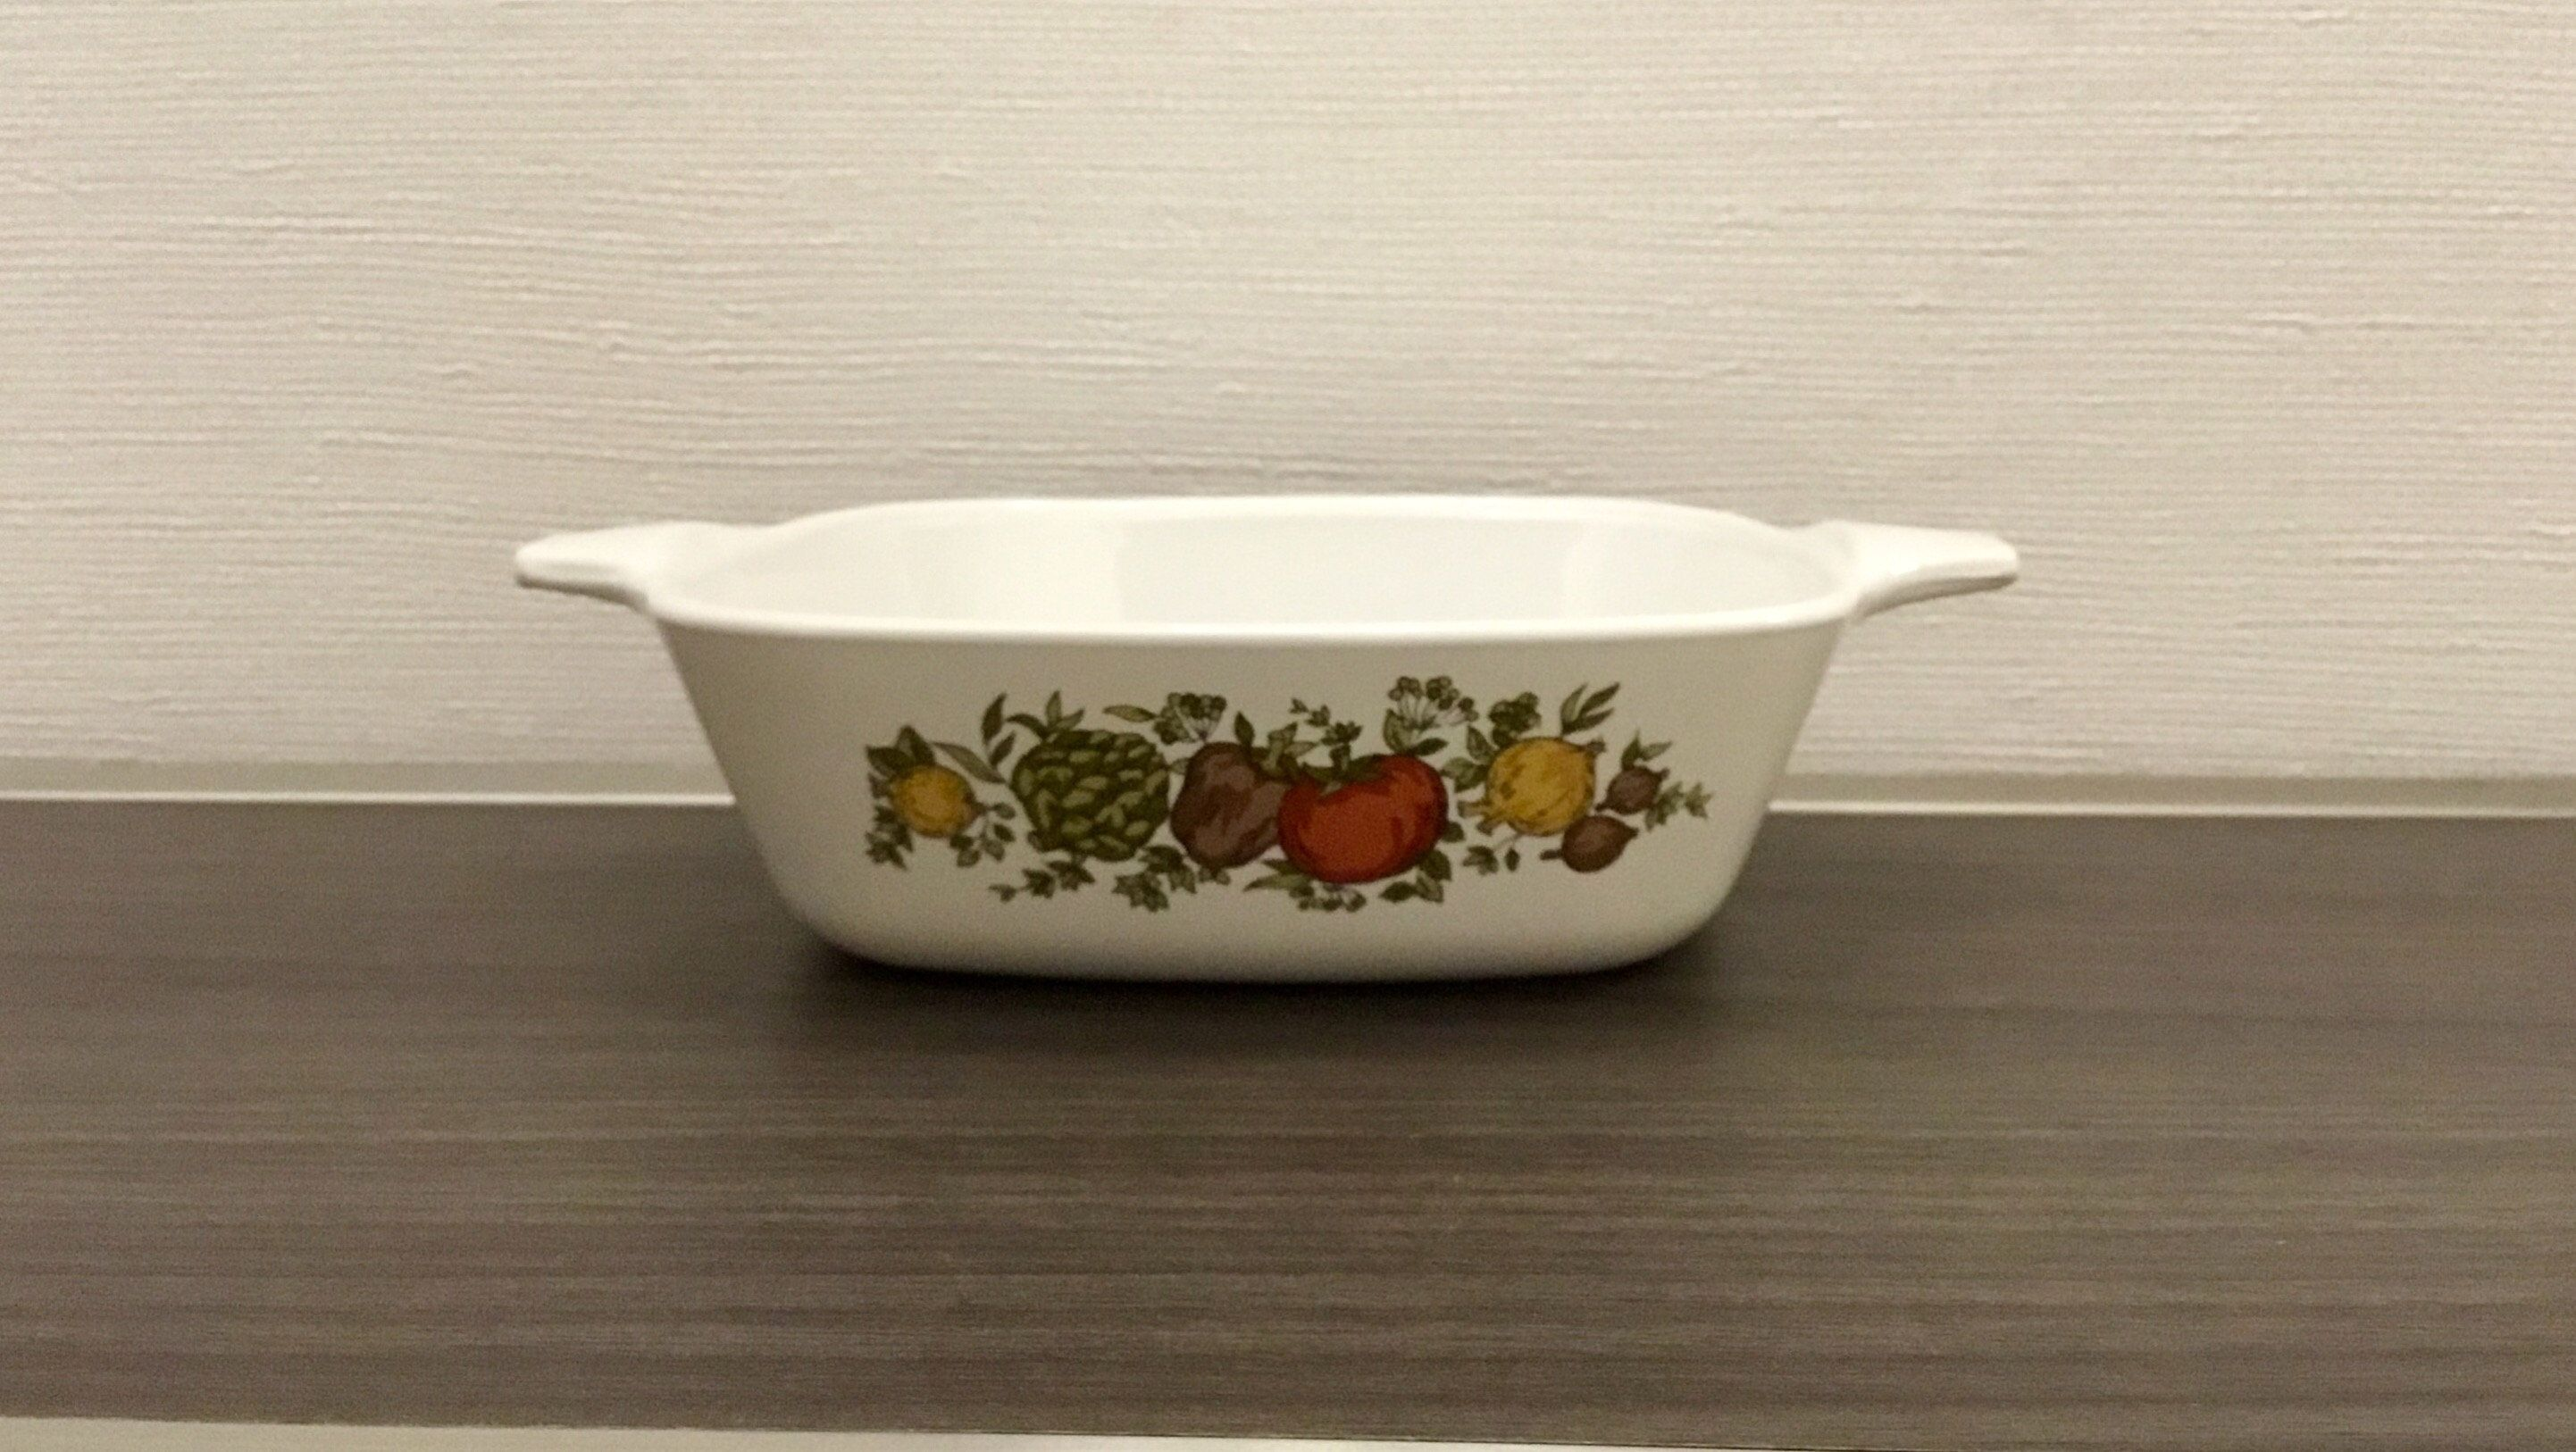 Range Made in USA Oven A-3-B Microwave 3 QuartLiter Spice of Life Corning Ware Casserole Dish with Clear Glass Lid